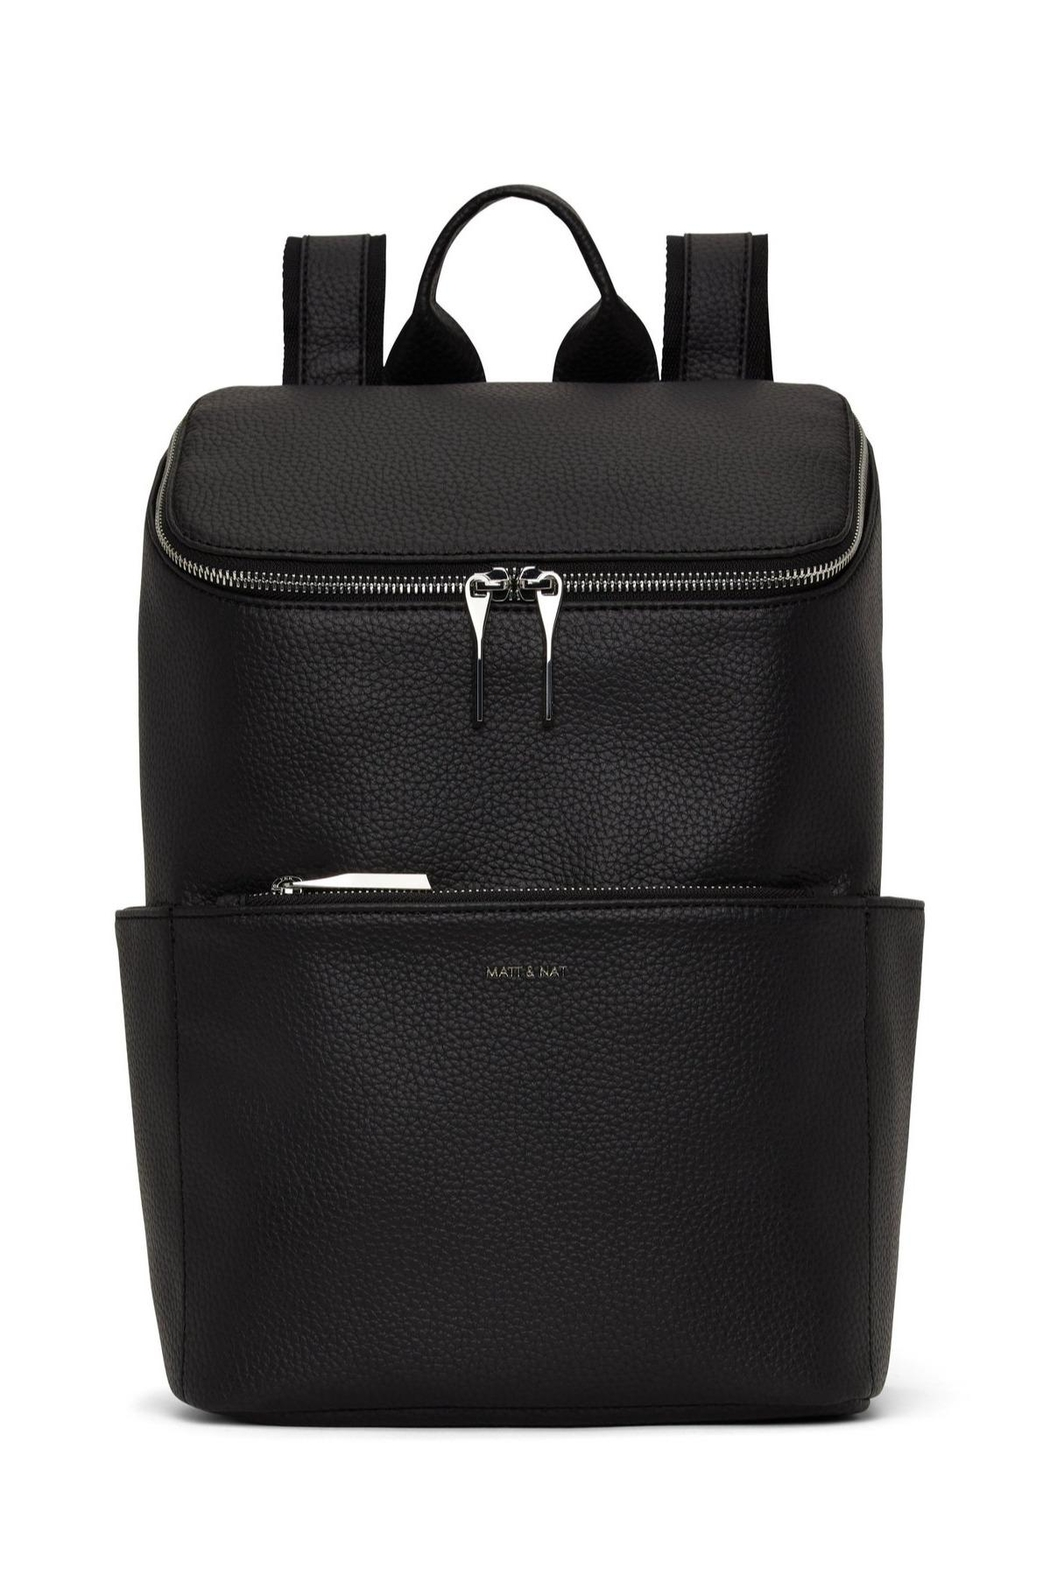 Matt & Nat Brave Backpack - Purity Collection - Front Cropped Image